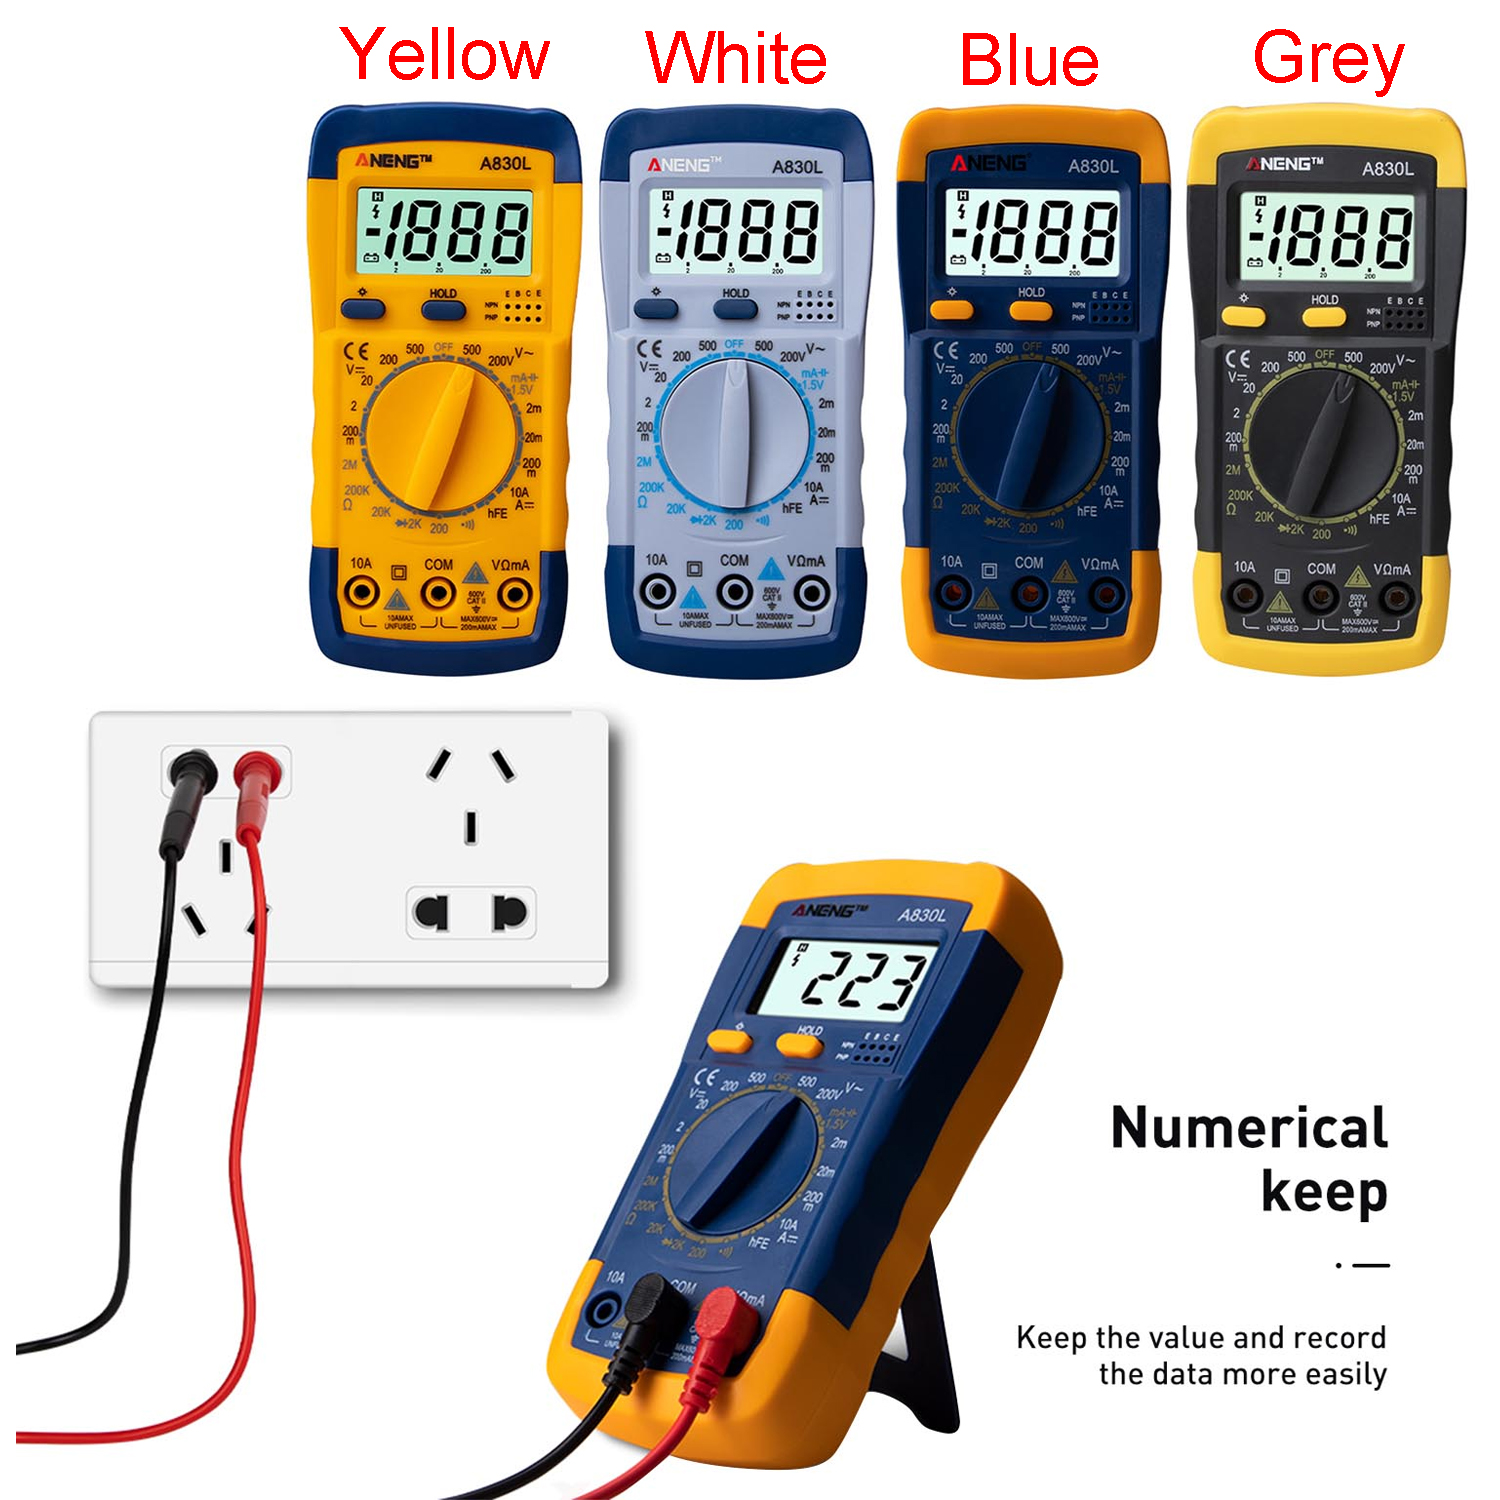 A830L Mini Pocket Hand-held Digital Multimeter Voltmeter Ammeter Ohmmeter Multimeter Volt AC DC Tester Meter